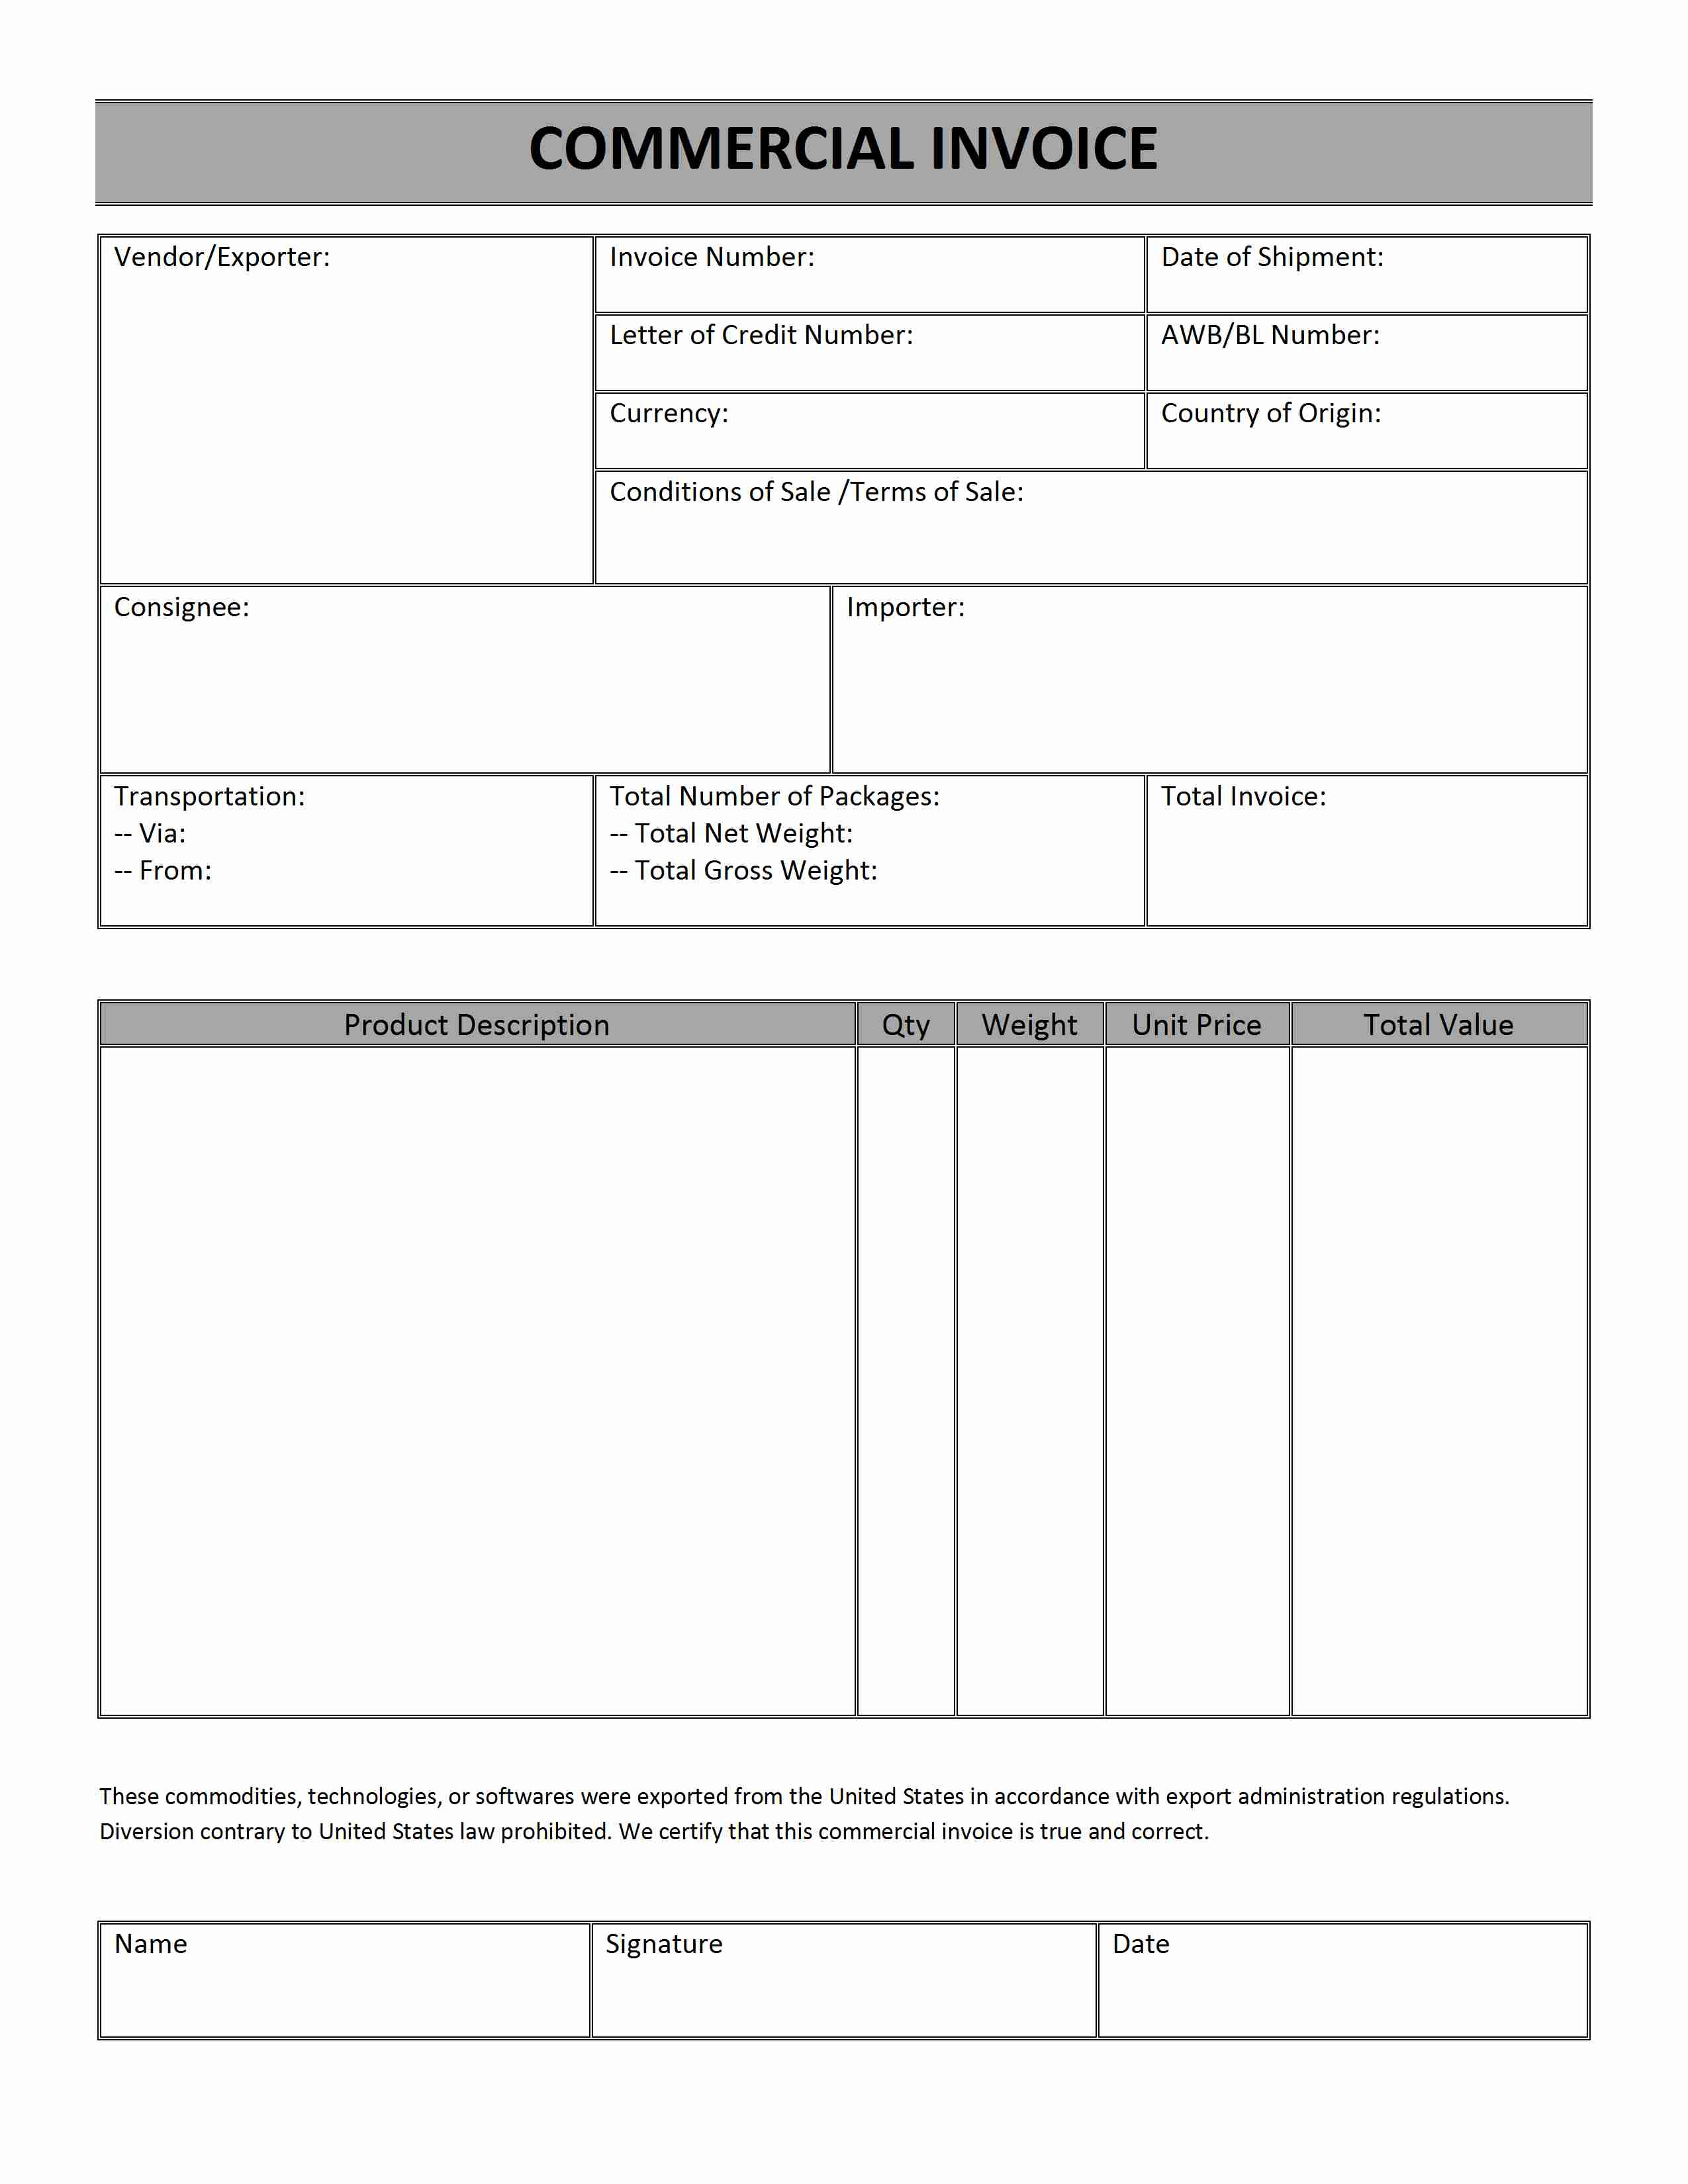 Conservativereviewus  Seductive Printable Sales Invoice Simple Invoice Form Free Invoice  With Likable Printable Receipt Free  Free Printable Raffle Tickets  Receipt   Printable With Astonishing Invoice Terminology Also Proforma Invoice Excel In Addition Honda Crv Invoice Price And Invoice Template For Google Drive As Well As How To Find Out The Invoice Price Of A Car Additionally Cash Invoice From Happytomco With Conservativereviewus  Likable Printable Sales Invoice Simple Invoice Form Free Invoice  With Astonishing Printable Receipt Free  Free Printable Raffle Tickets  Receipt   Printable And Seductive Invoice Terminology Also Proforma Invoice Excel In Addition Honda Crv Invoice Price From Happytomco